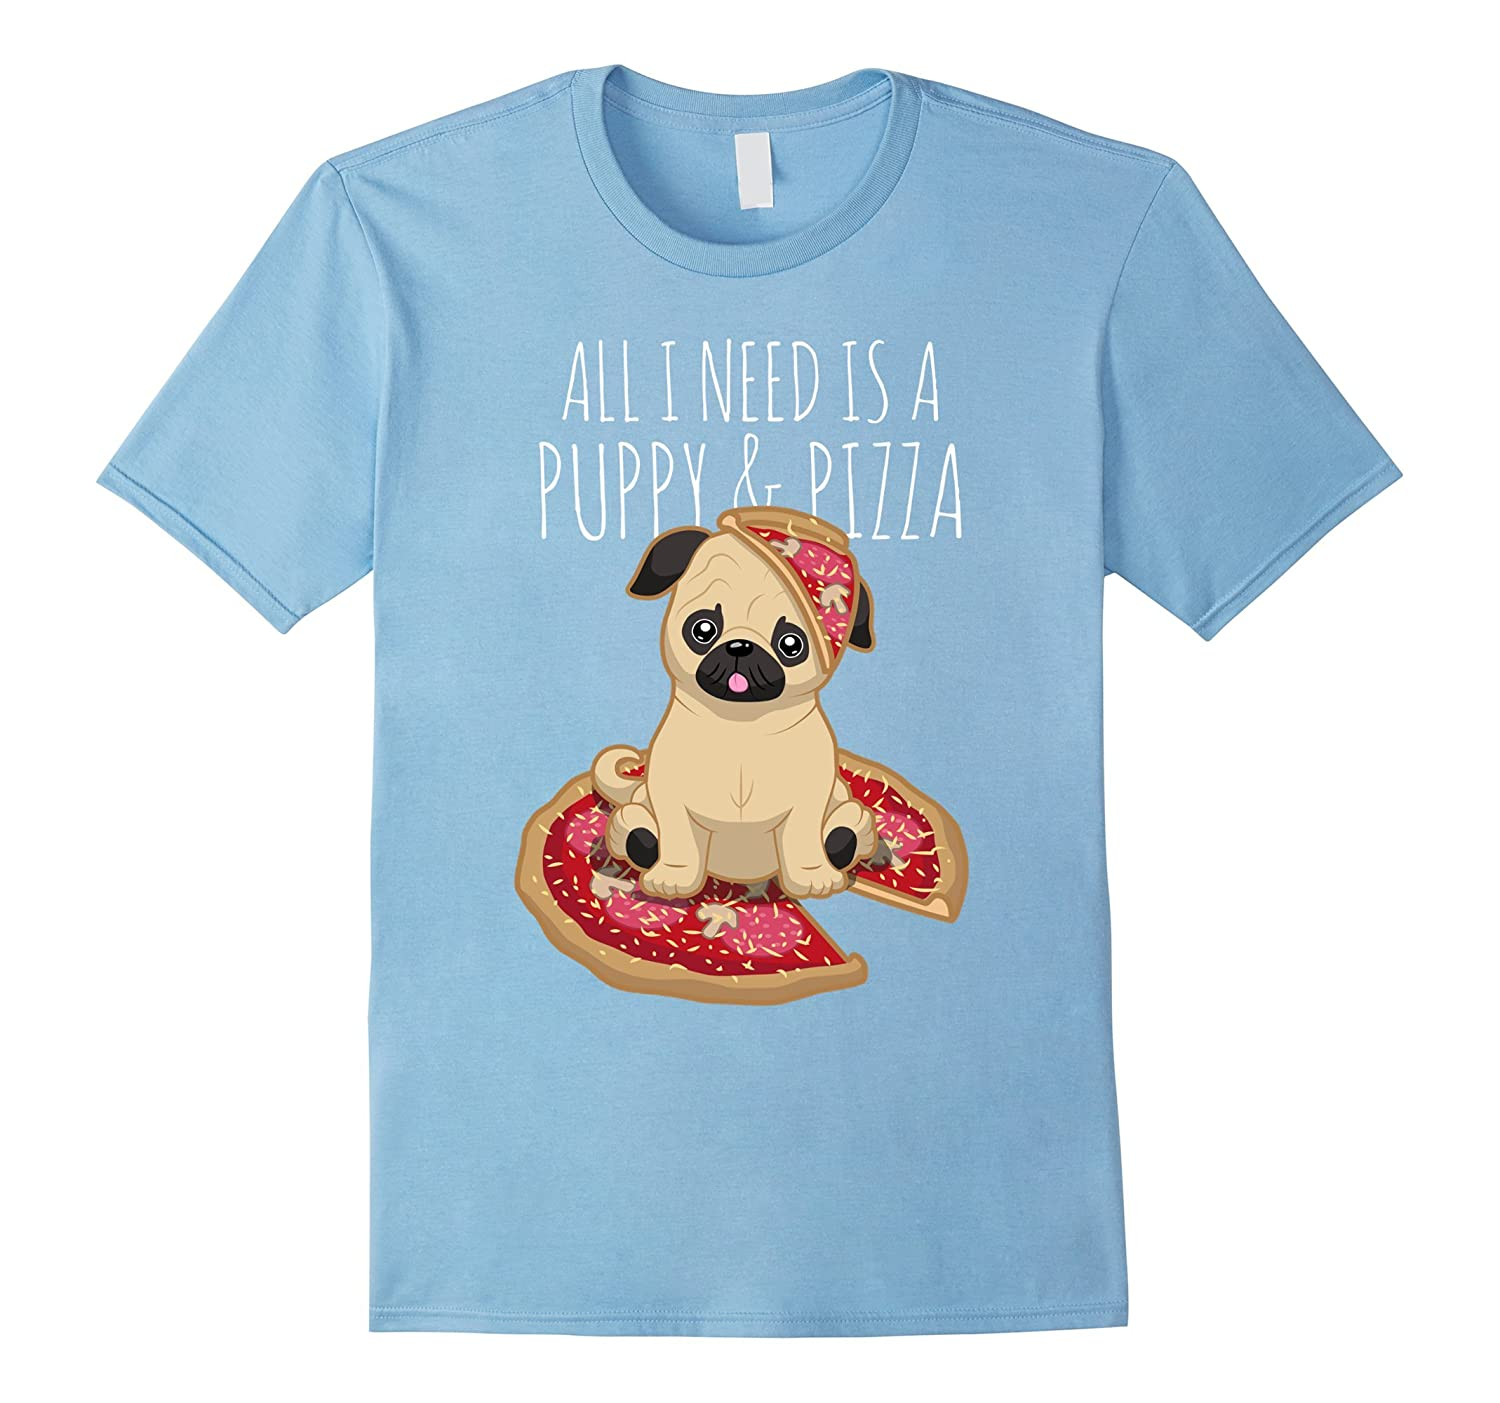 All i need is a Puppy  Pizza - Cute Pug T-shirt dog lover-TH